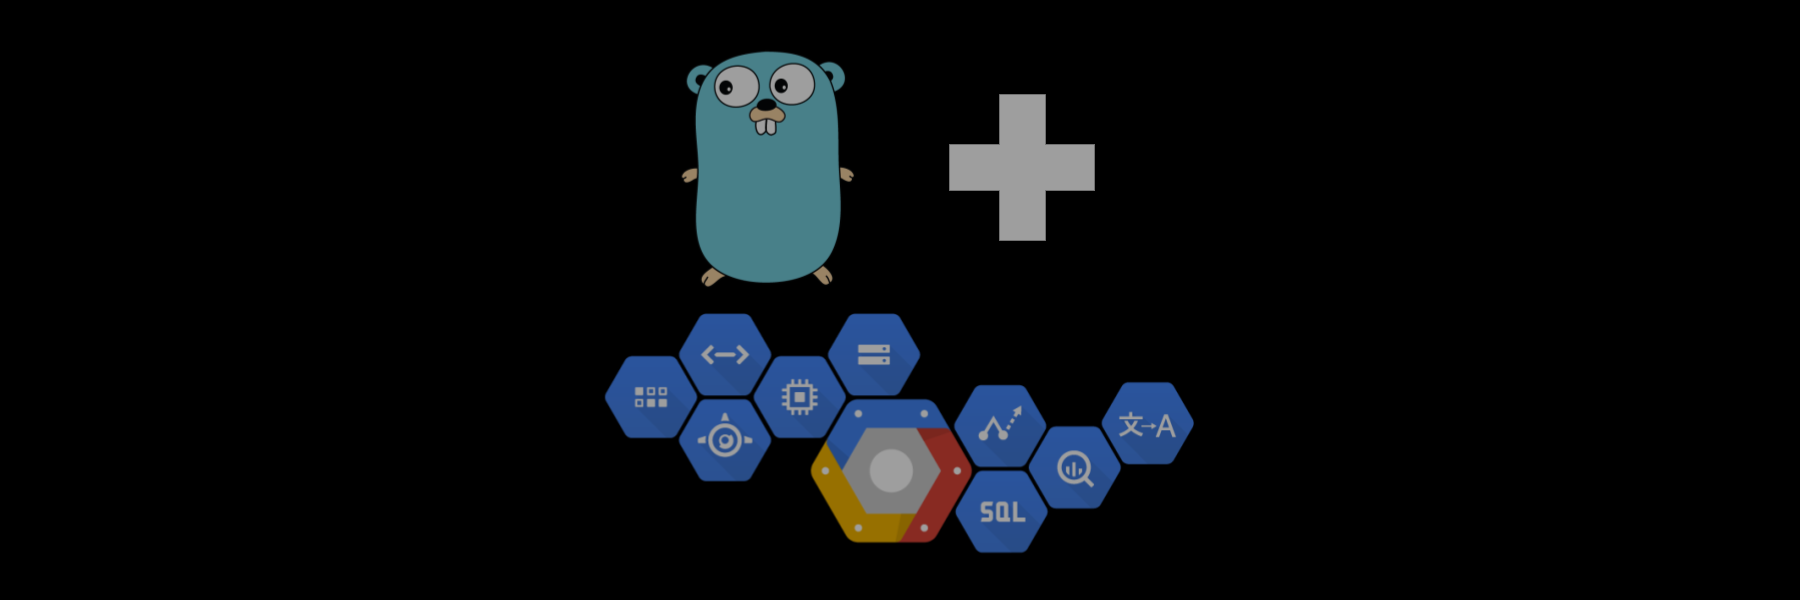 How to Create a REST Service on Google AppEngine Using GO